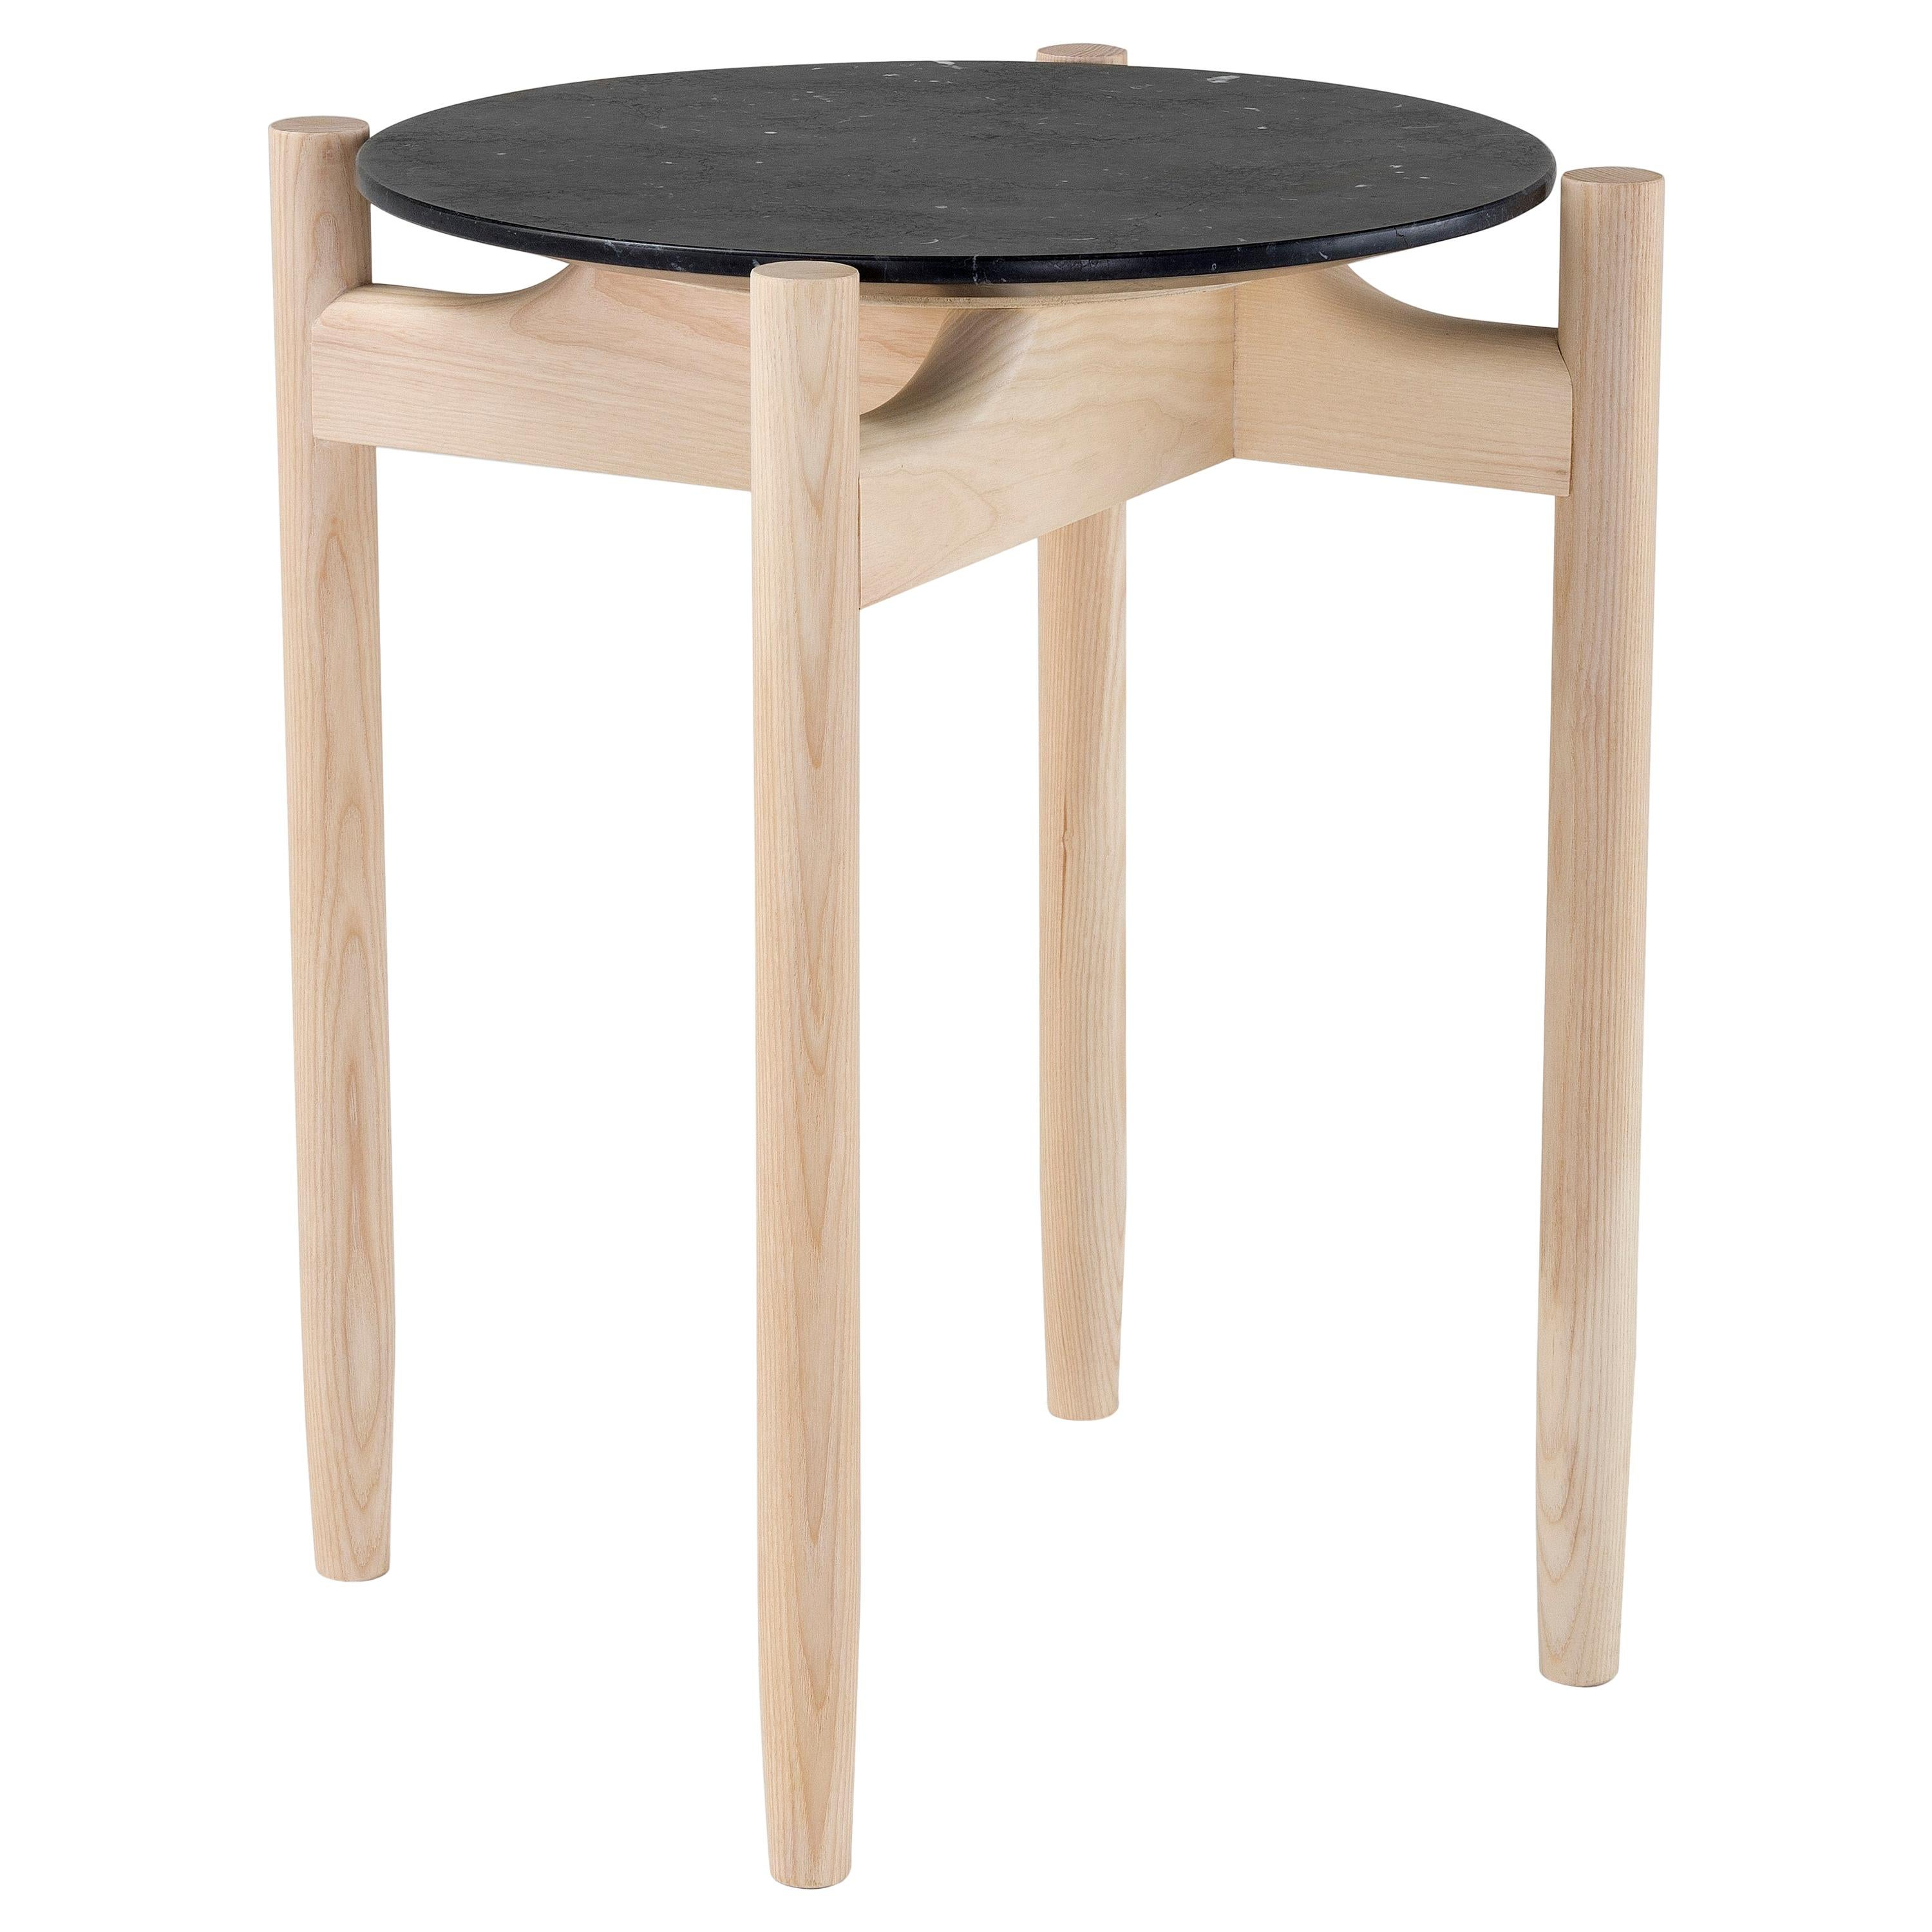 Amura Juli Small Round Coffee Table in Marble and Wood by Marconato & Zappa